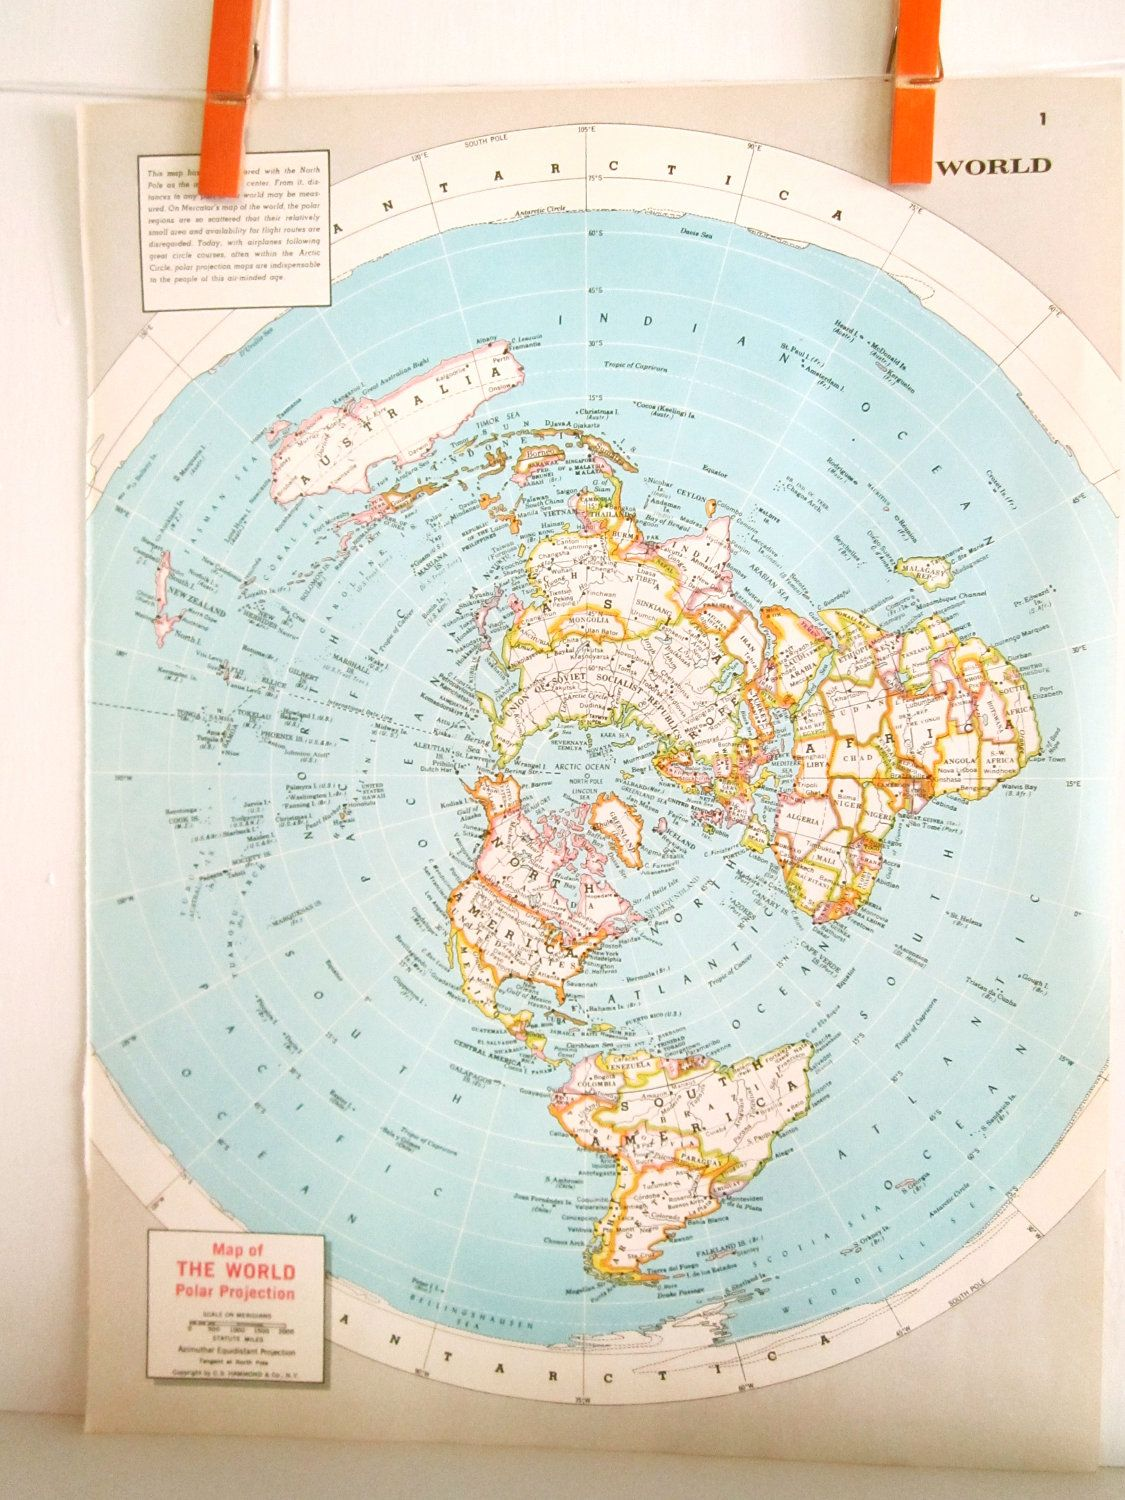 World map vintage map of the world pastel colors map colors 1940s find an old atlas from a used book store and cut out the world map or one of the countries we are from scotland england netherlands etc gumiabroncs Image collections